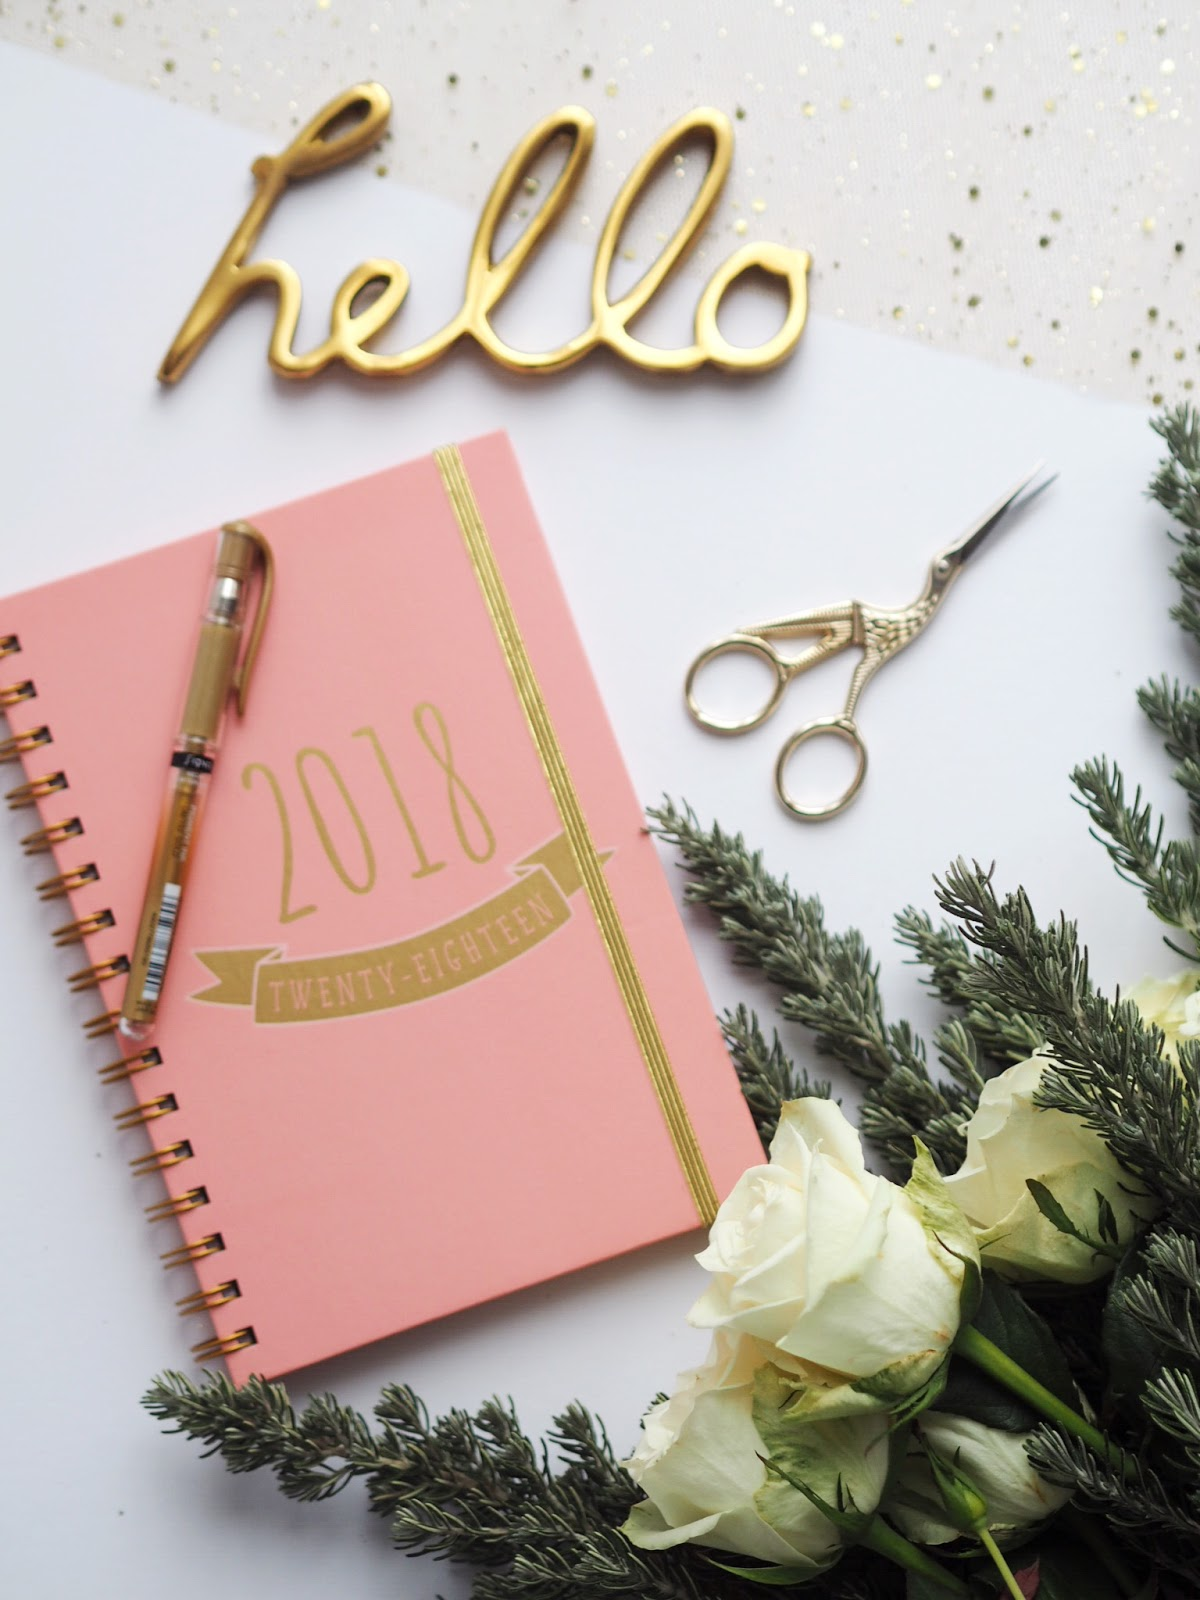 Lifestyle | Making 2018 My Best Year Yet - 2018 Planner, cut fresh white roses, spruce and hello letters